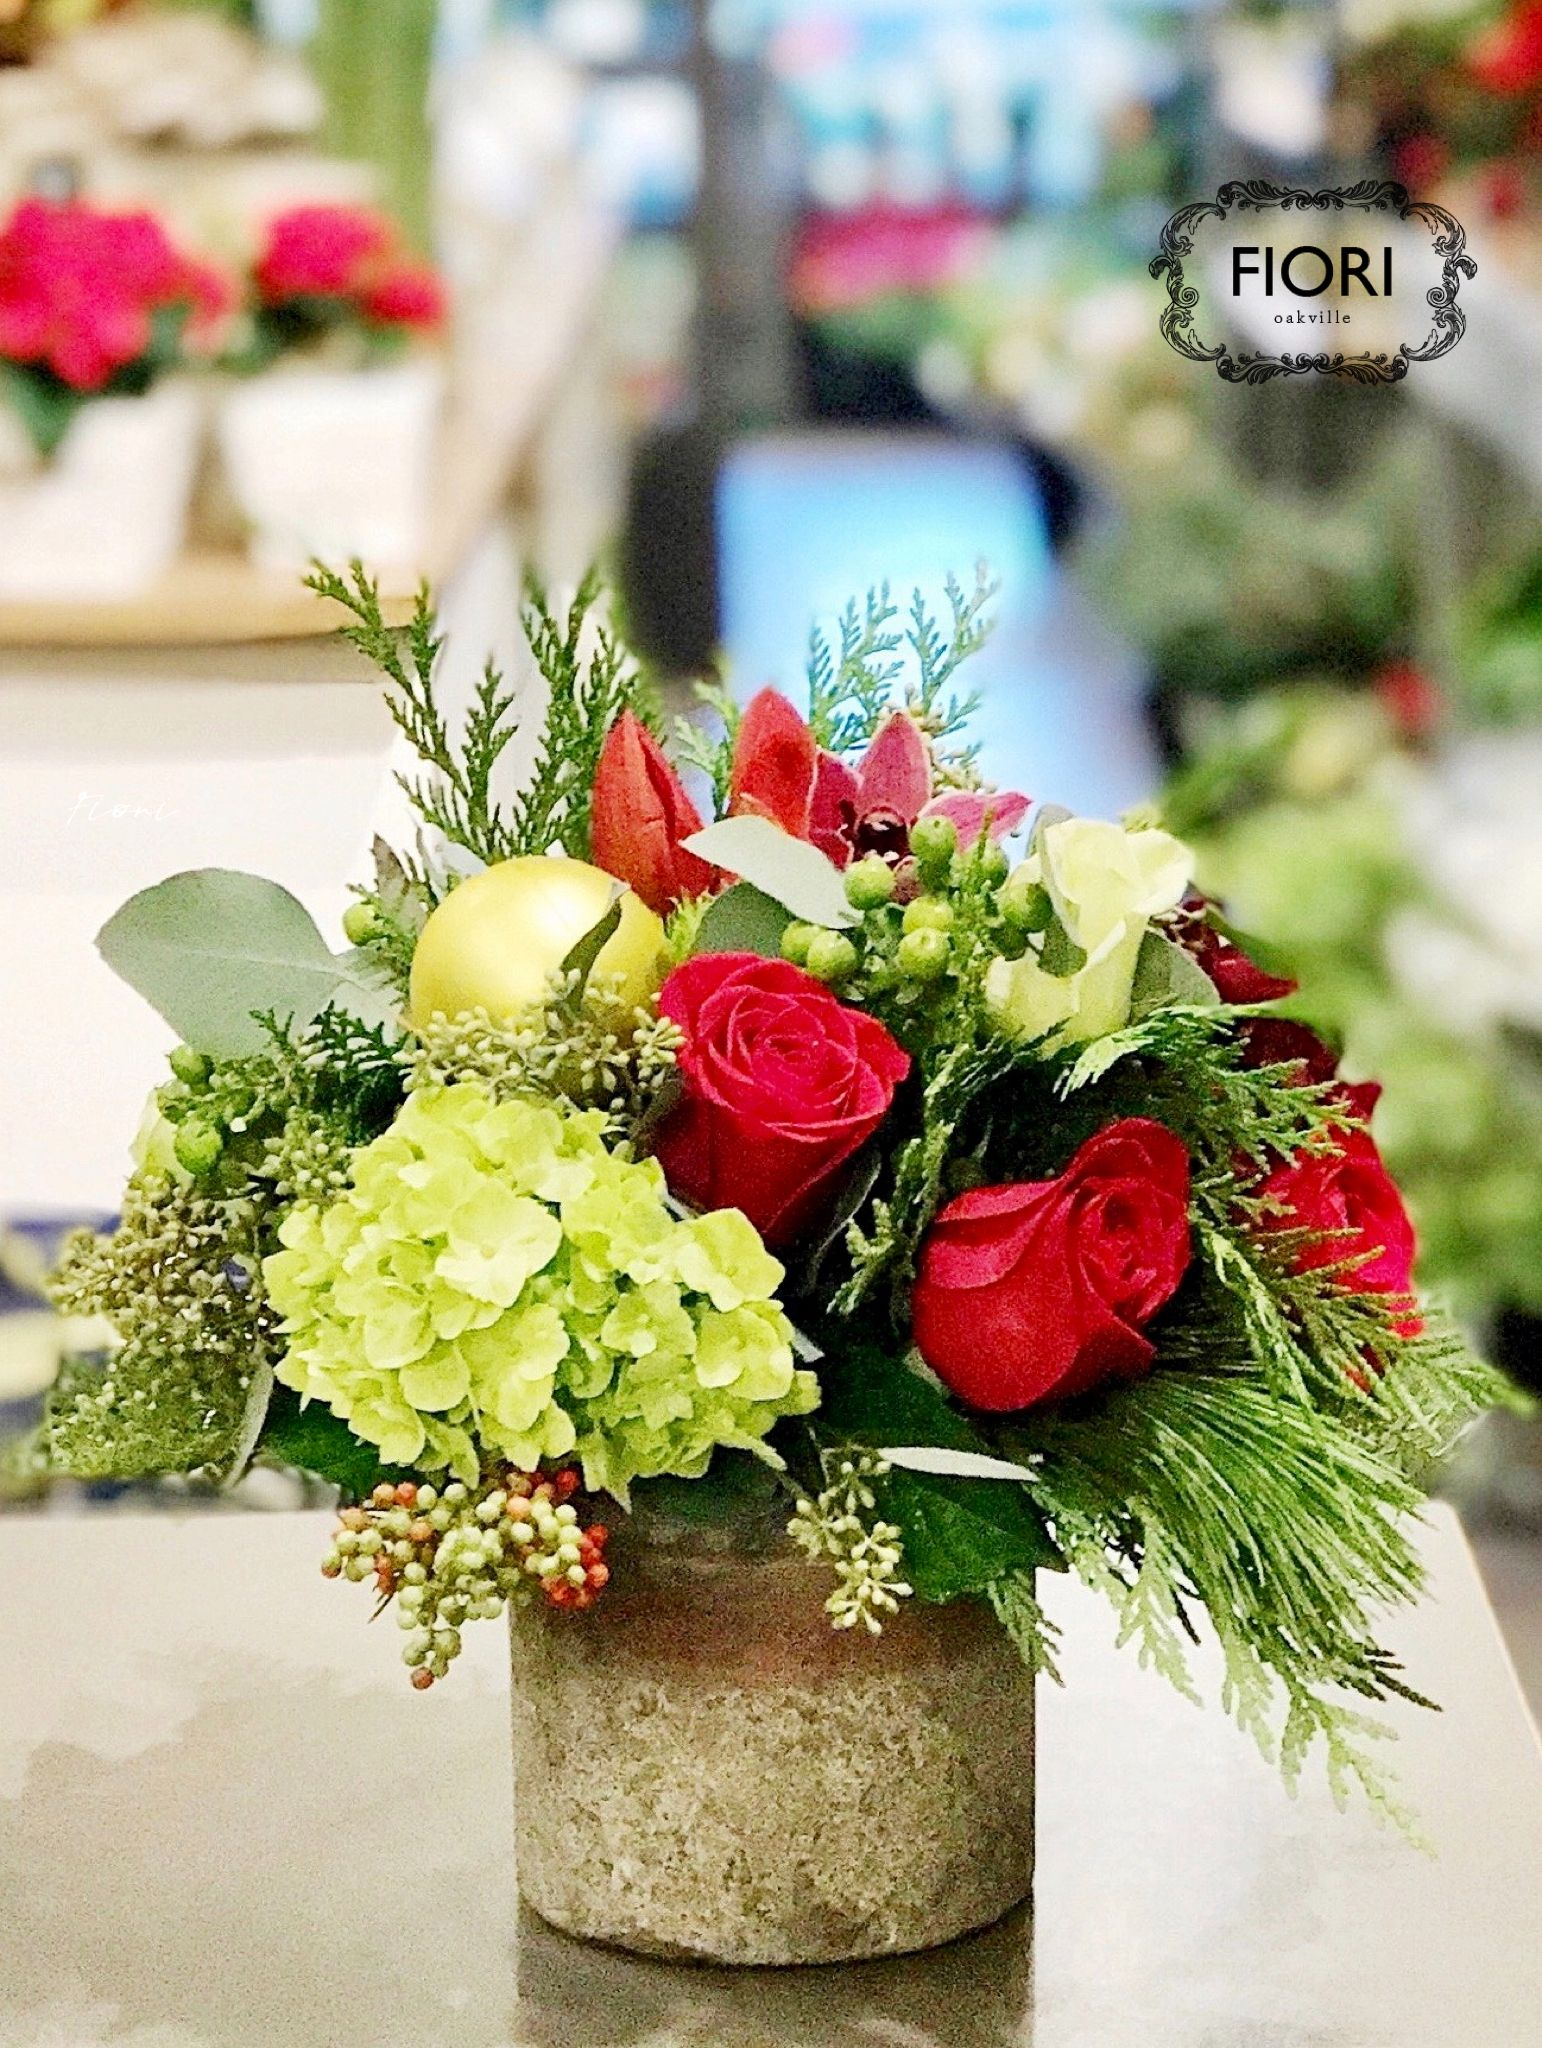 * Our signature flower arrangements truly are handcrafted